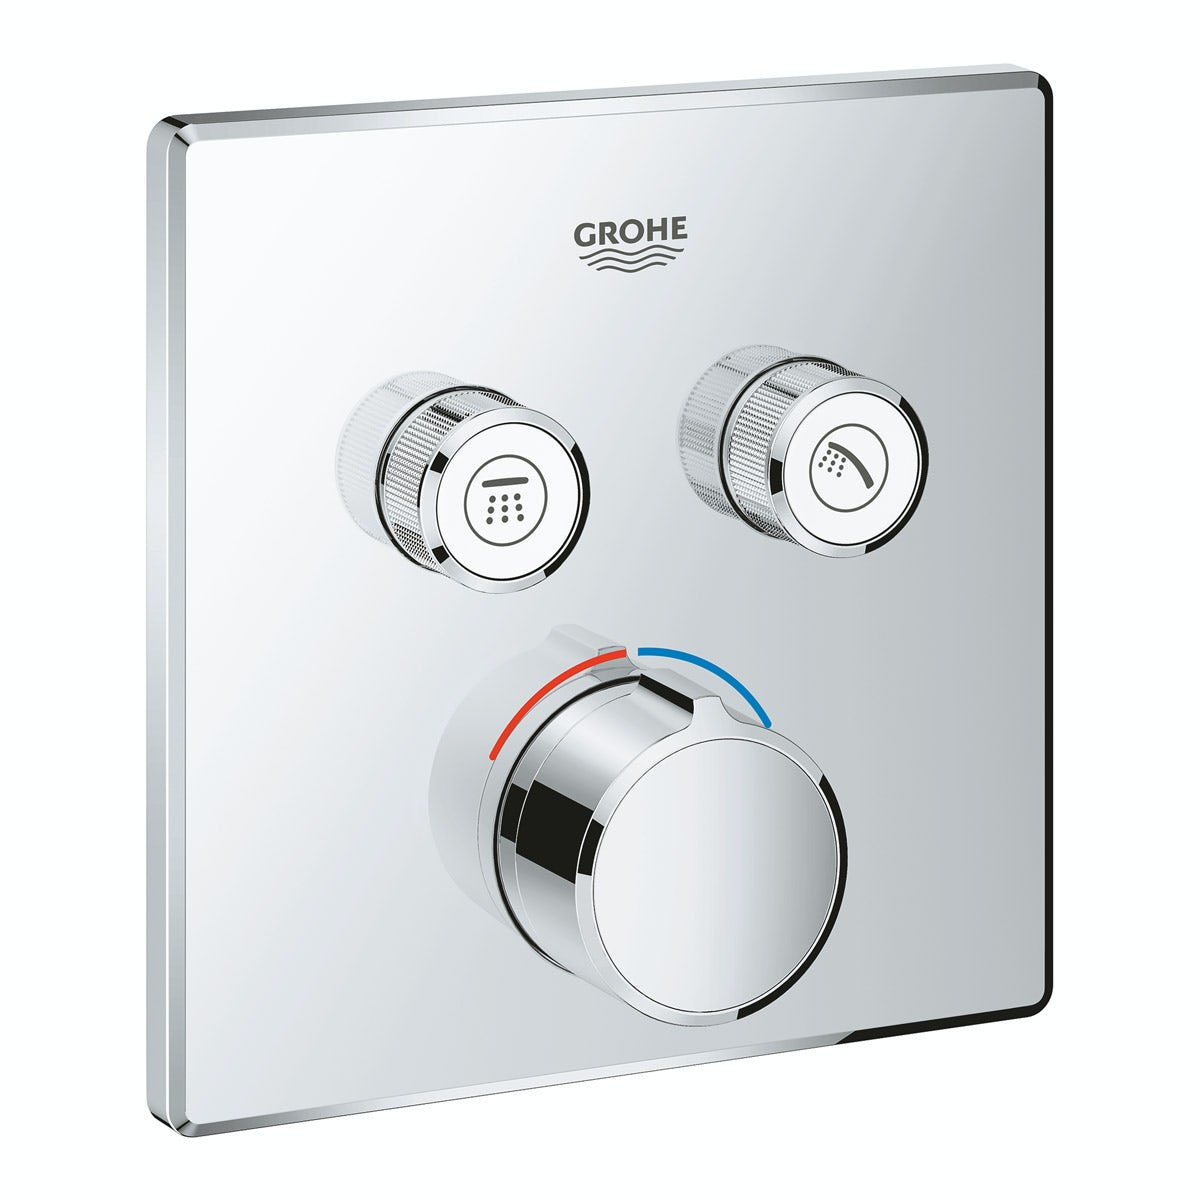 Grohe SmartControl square concealed 2 way shower valve trimset